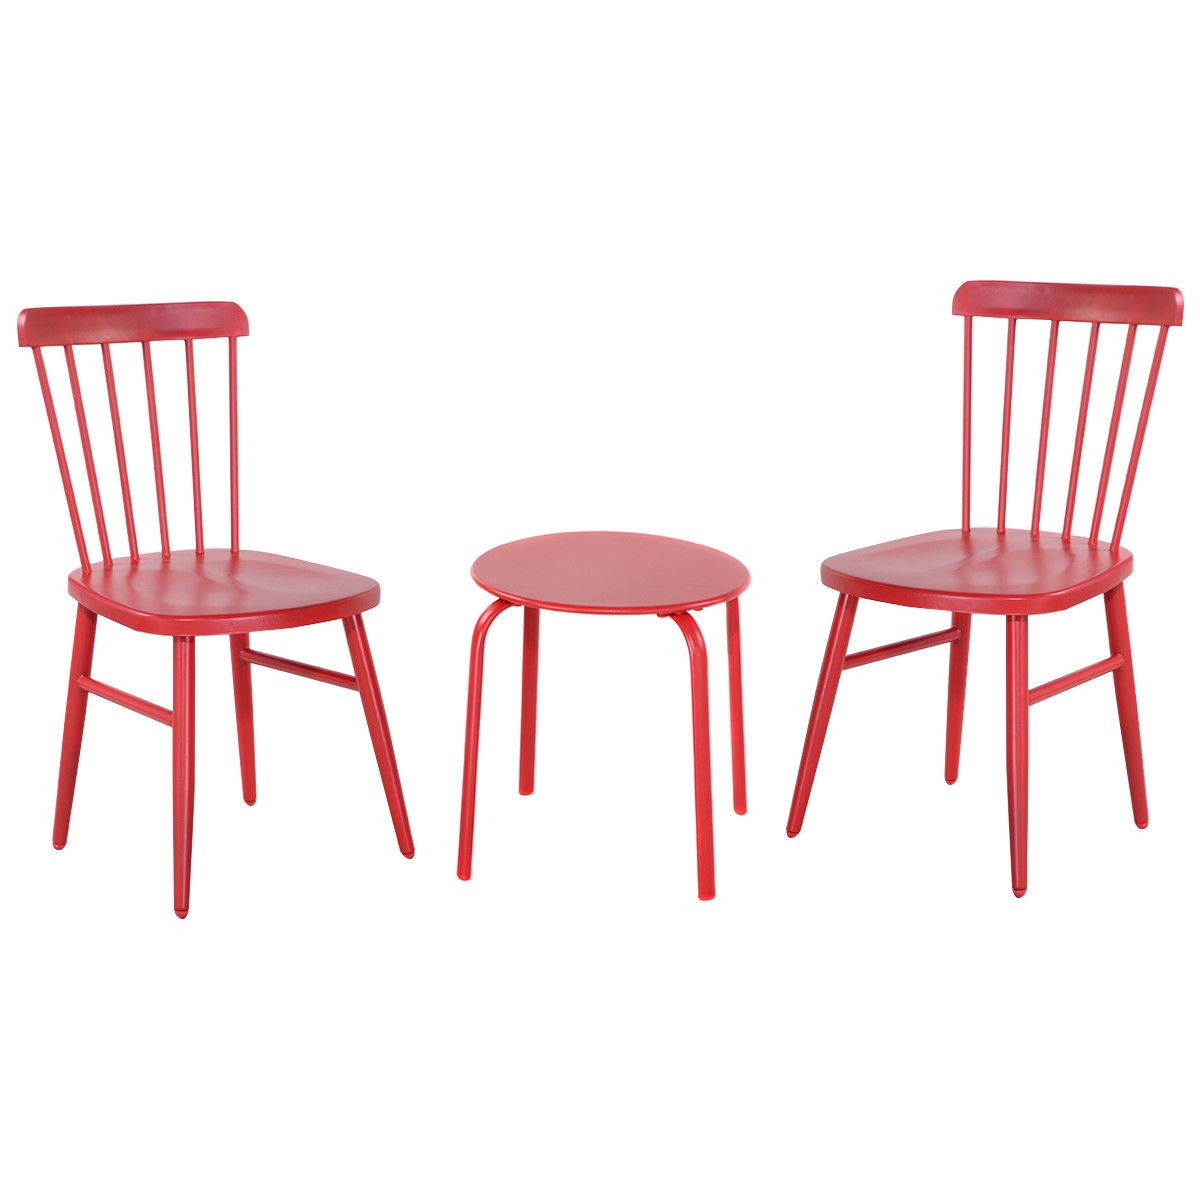 billionese Patio Table Chairs Furniture Set Bistro Garden Lawn Pool Side Steel Red 3PCS